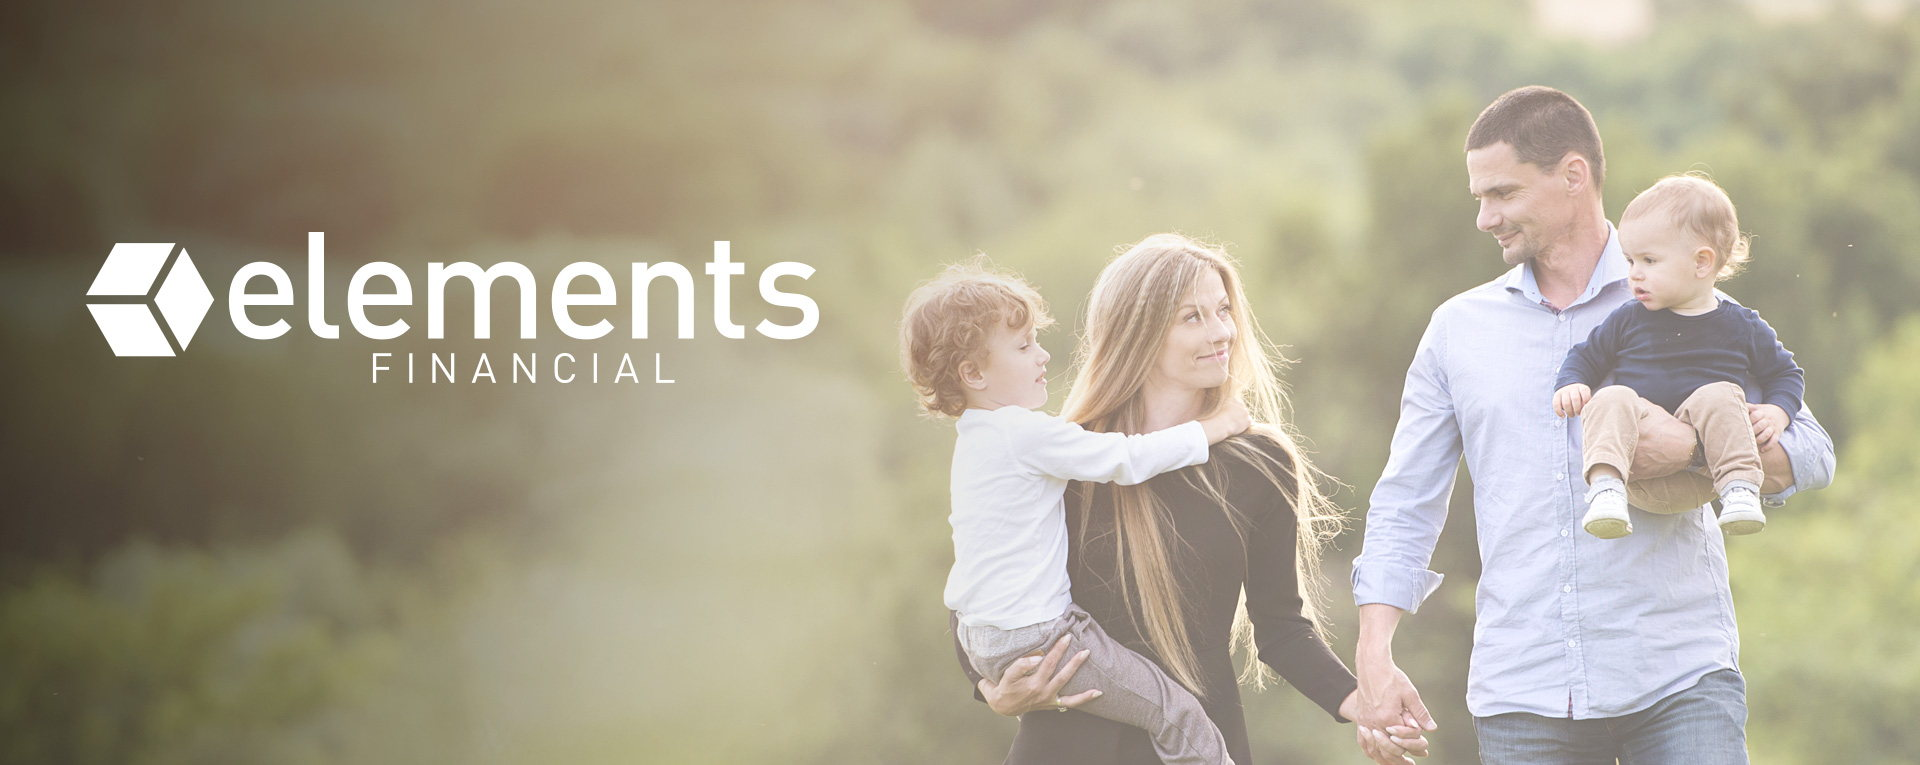 Elements Financial